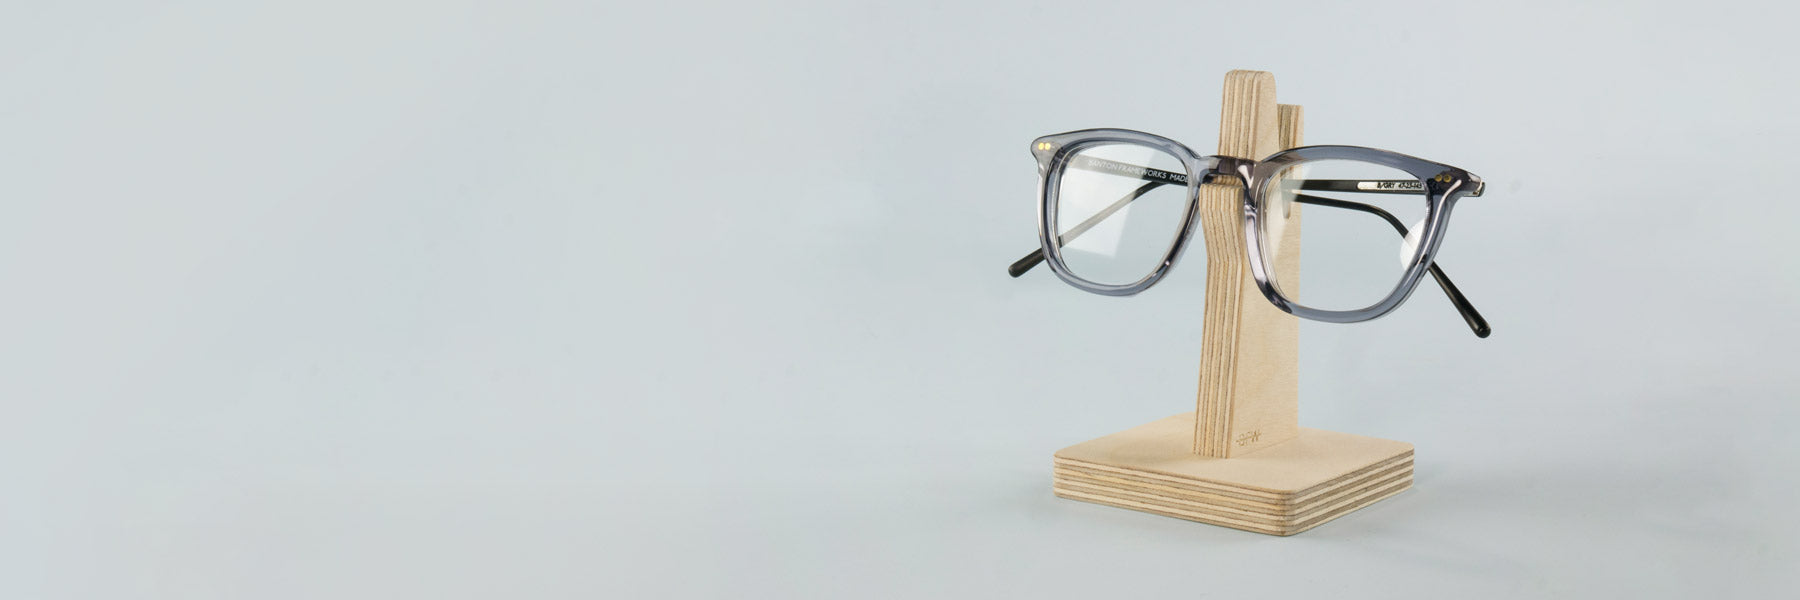 A wooden glasses holder